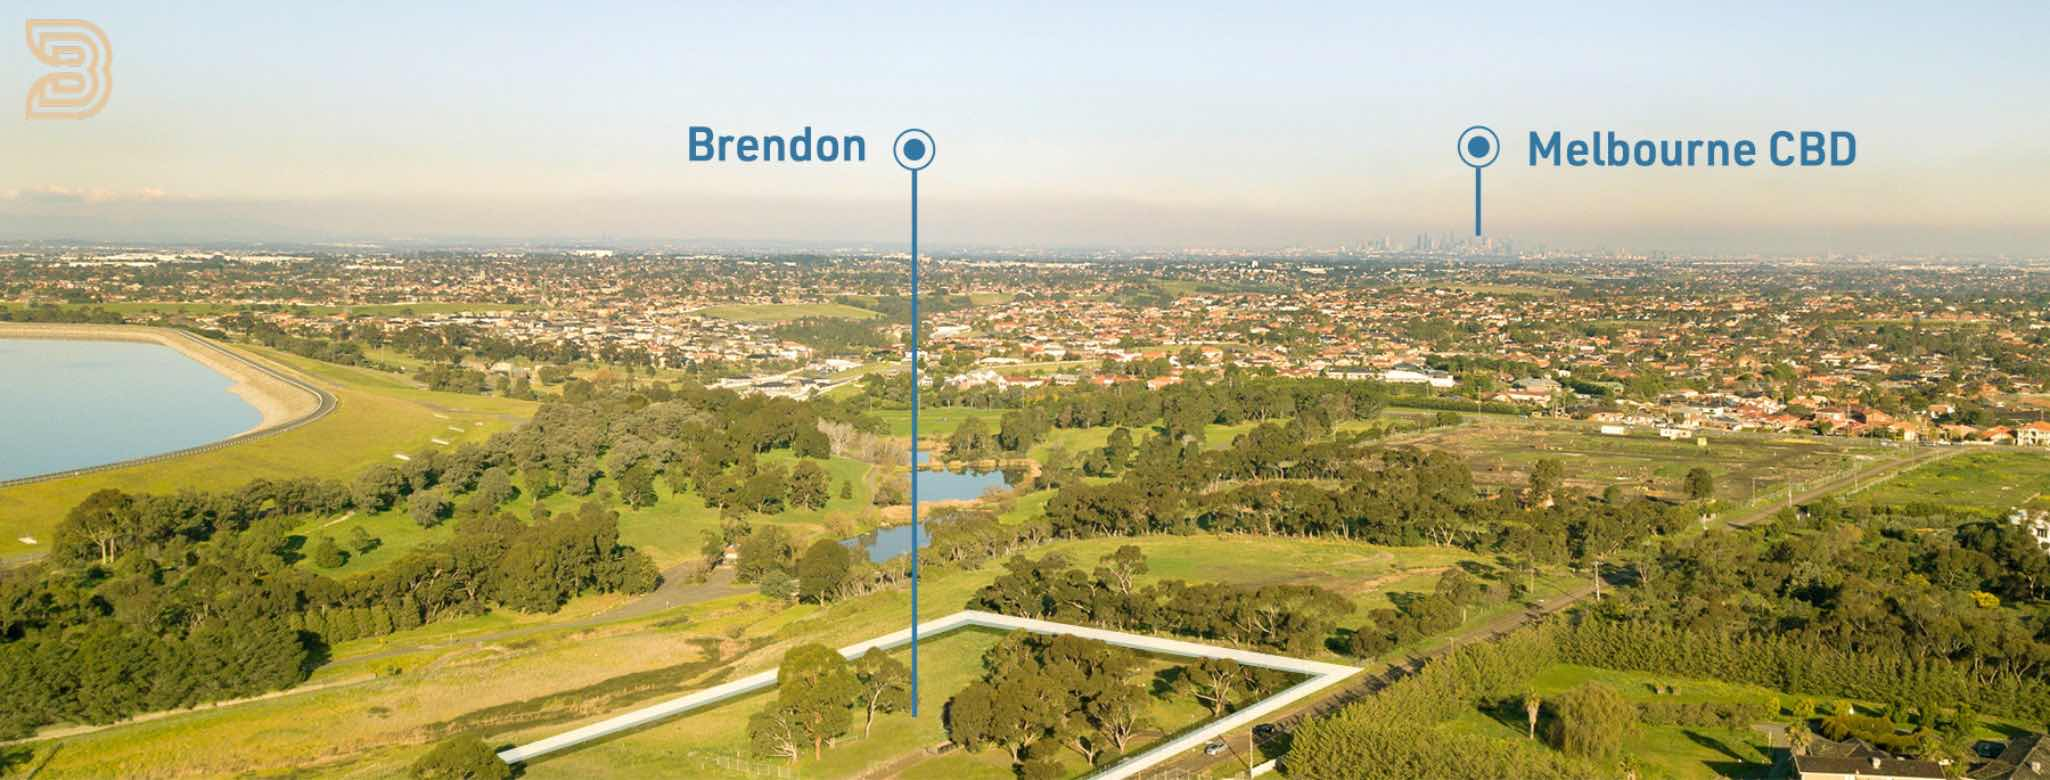 The Brendon Greenvale Aerial